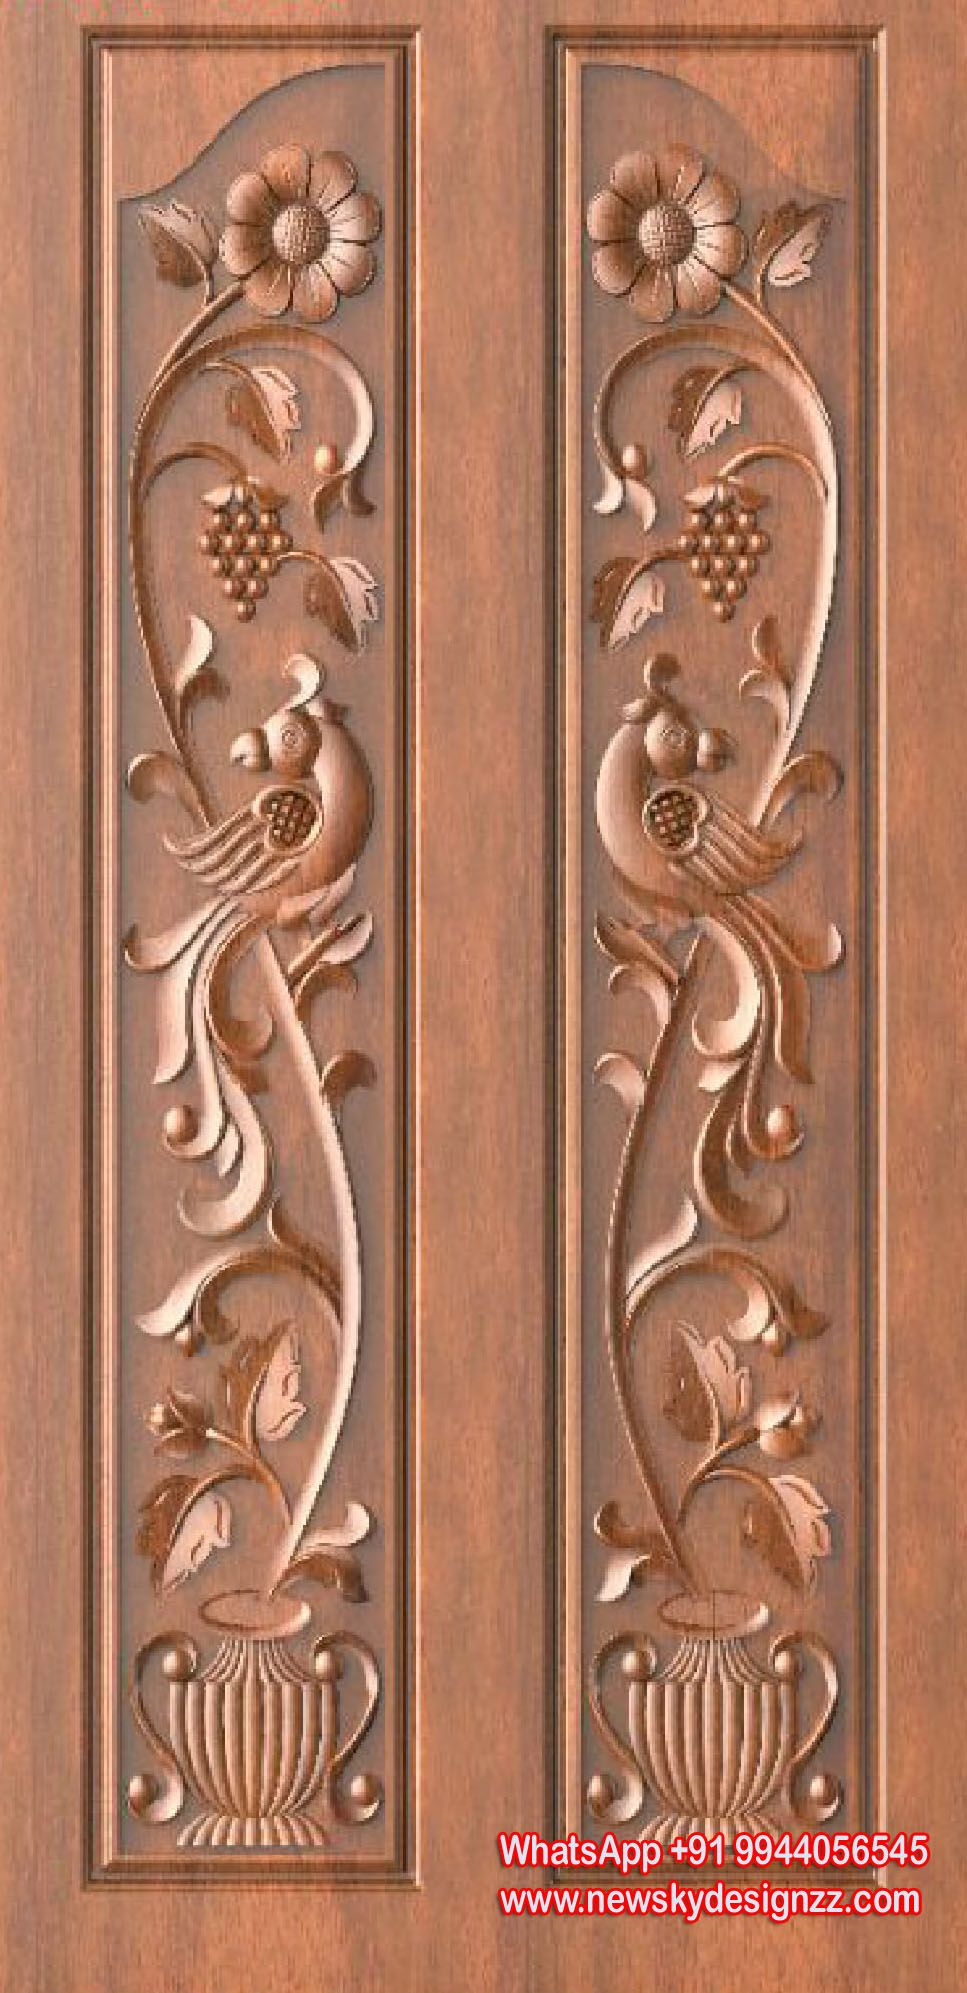 9 Traditional Pooja Room Door Designs In 2020: Pin By Artcam Designs Sale On 50 Traditional Door Designs